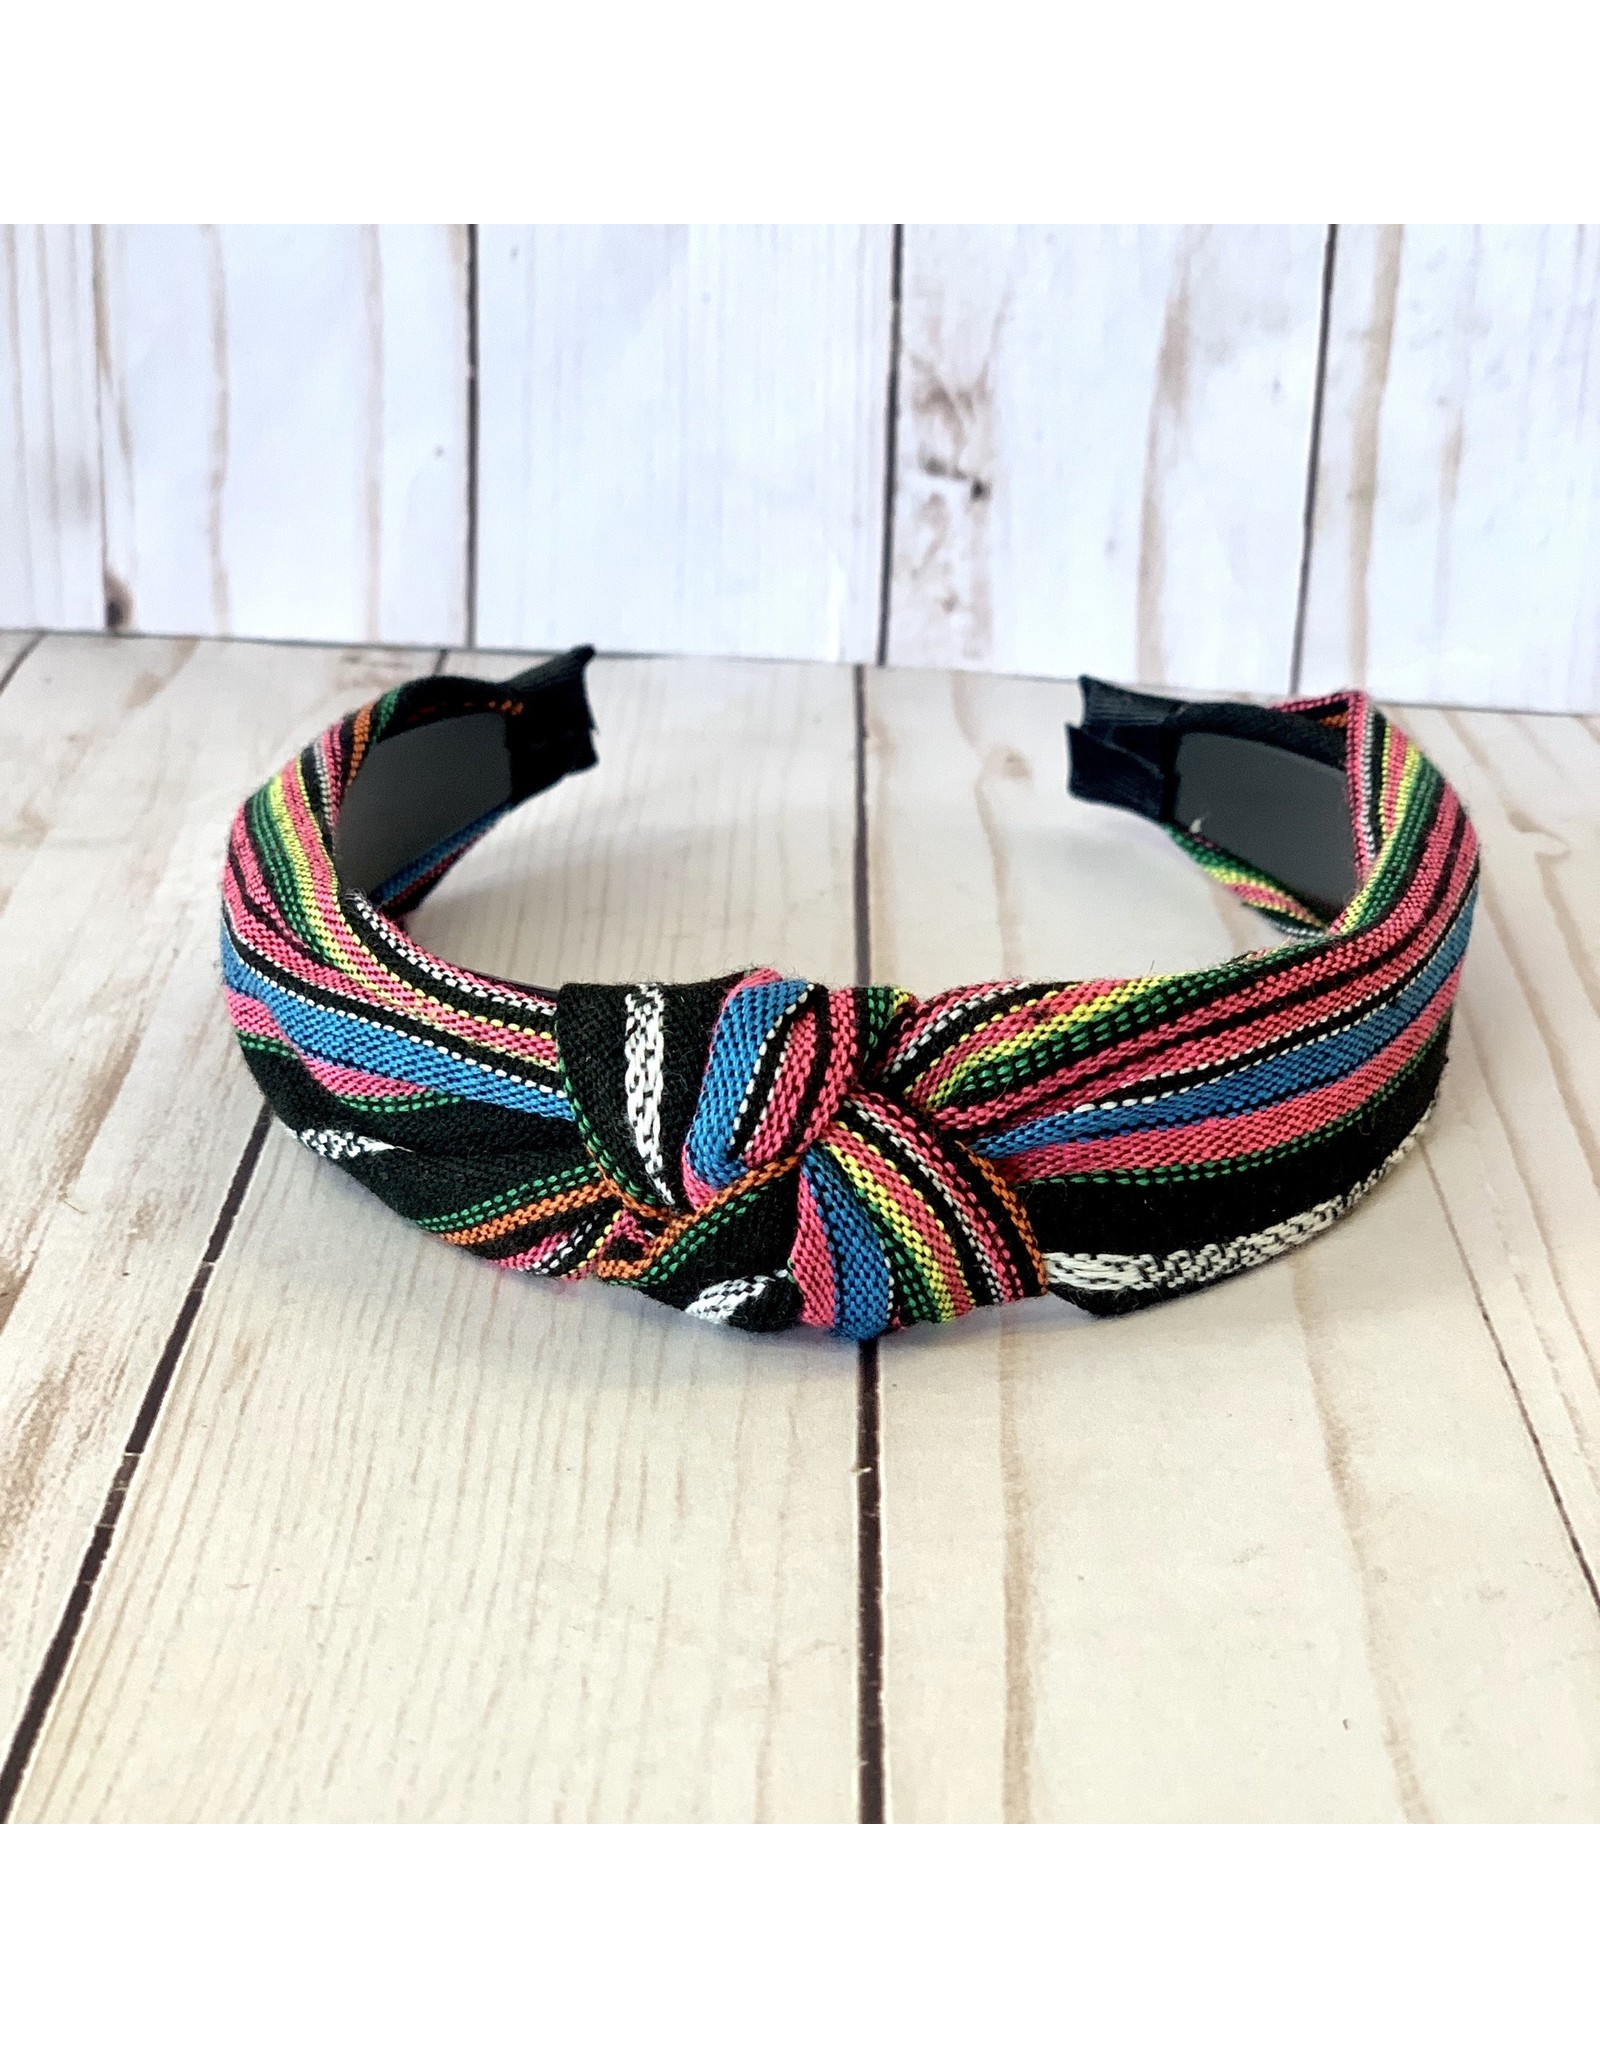 Funteze Accessories TRIBAL Knotted Headband